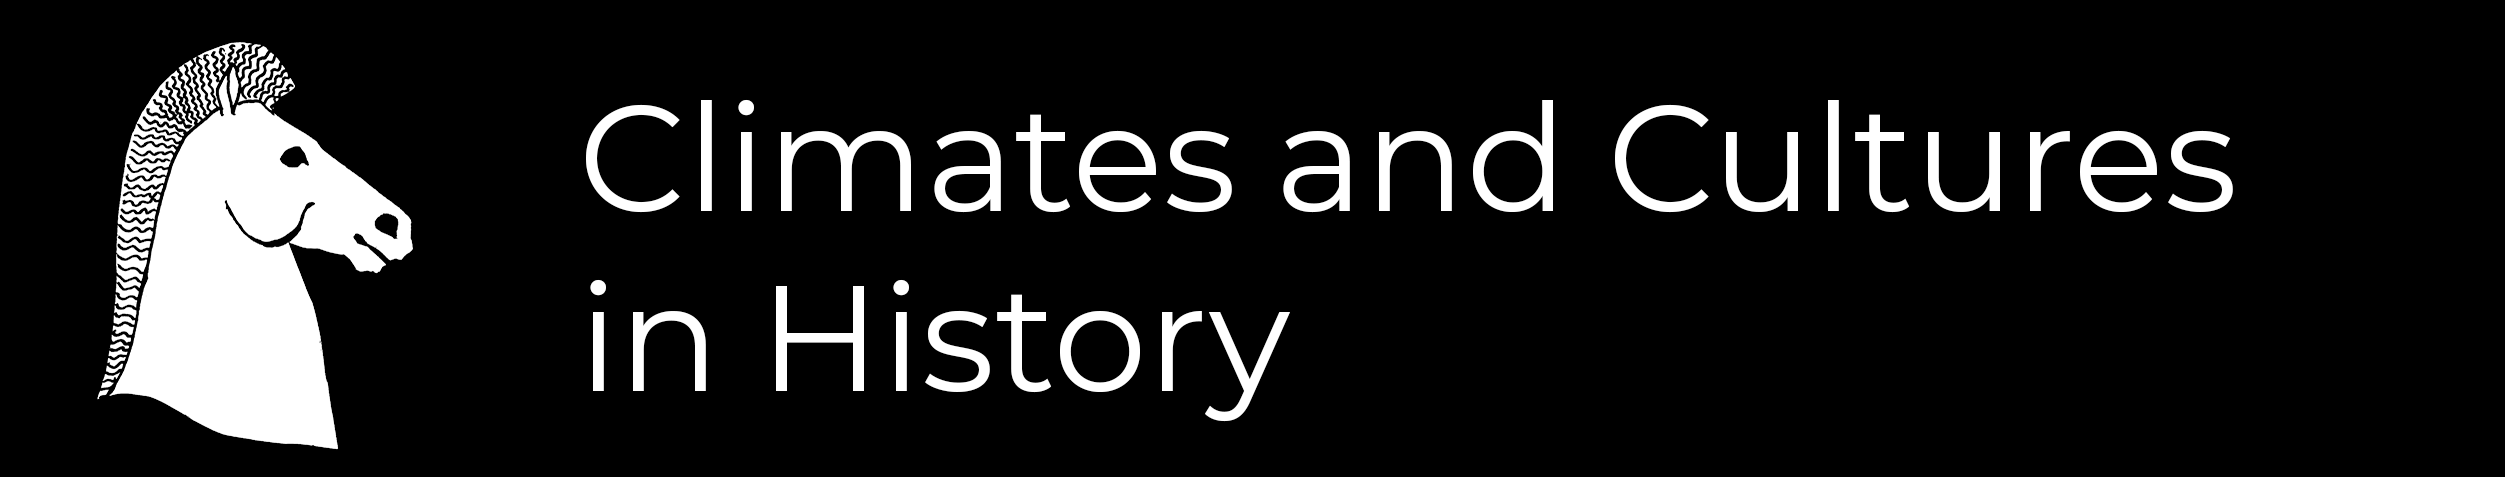 Climate and Cultures in History logo